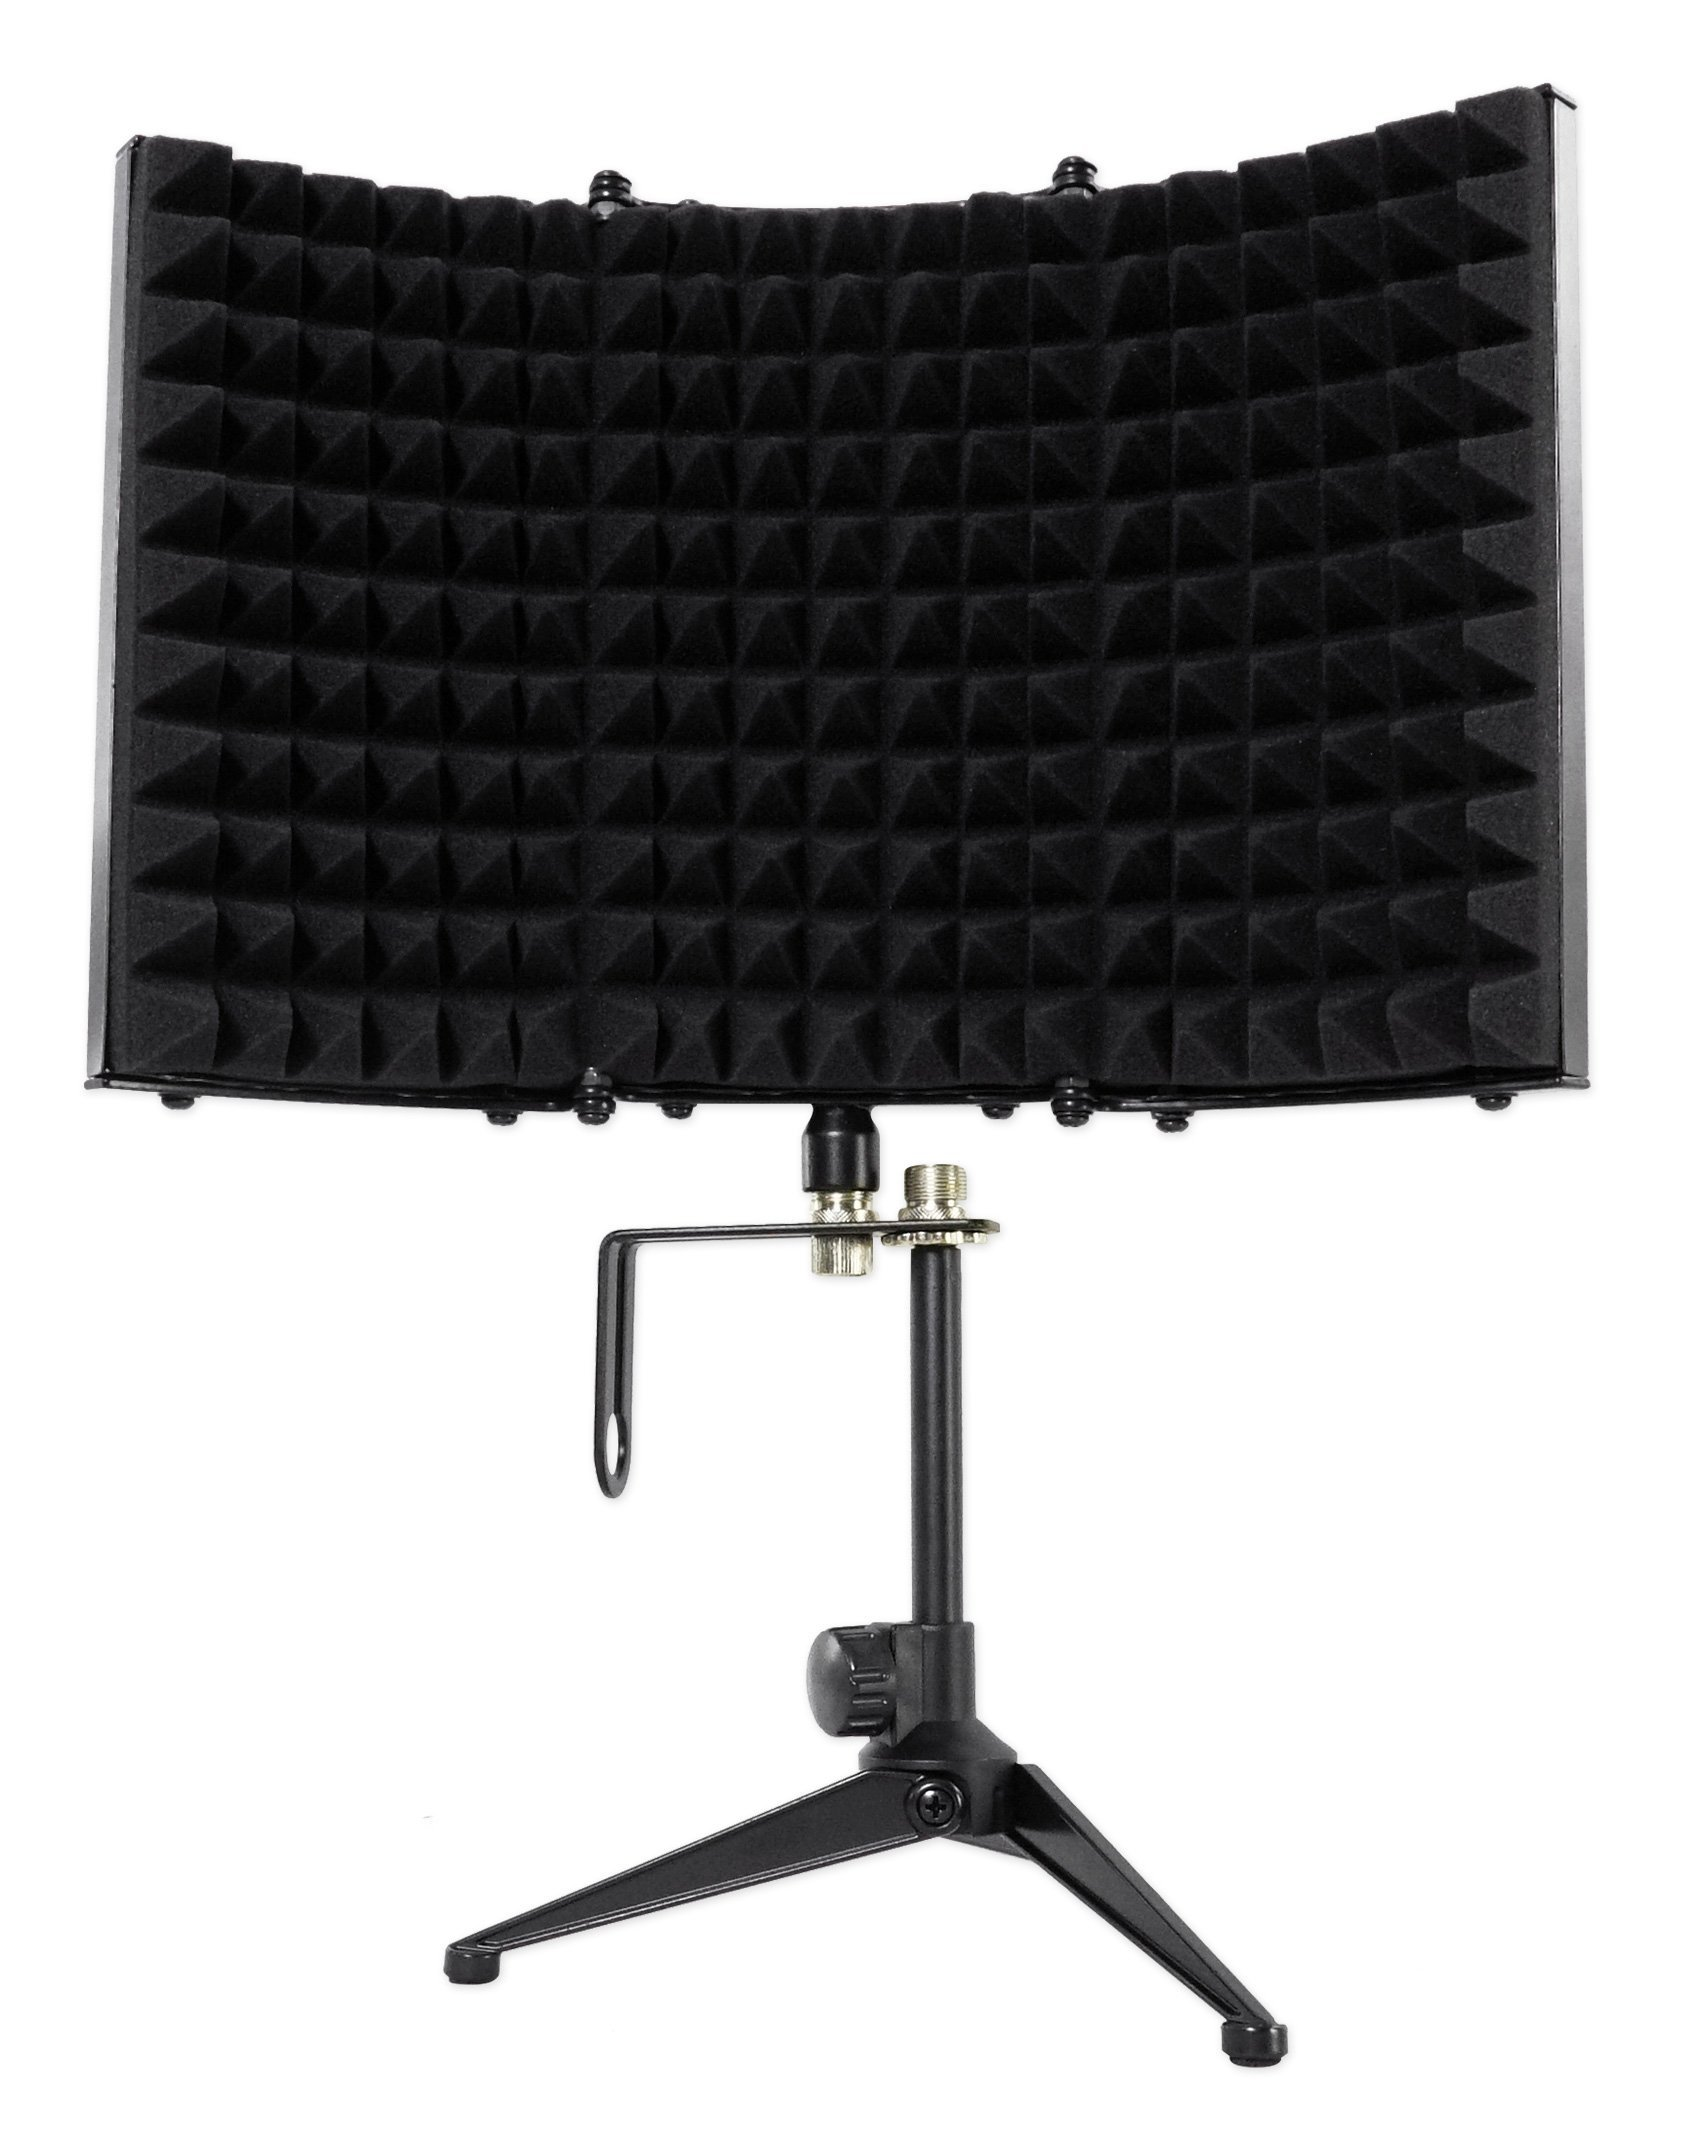 Rockville RMF1 Studio Microphone Isolation Shield with Sound Dampening Foam